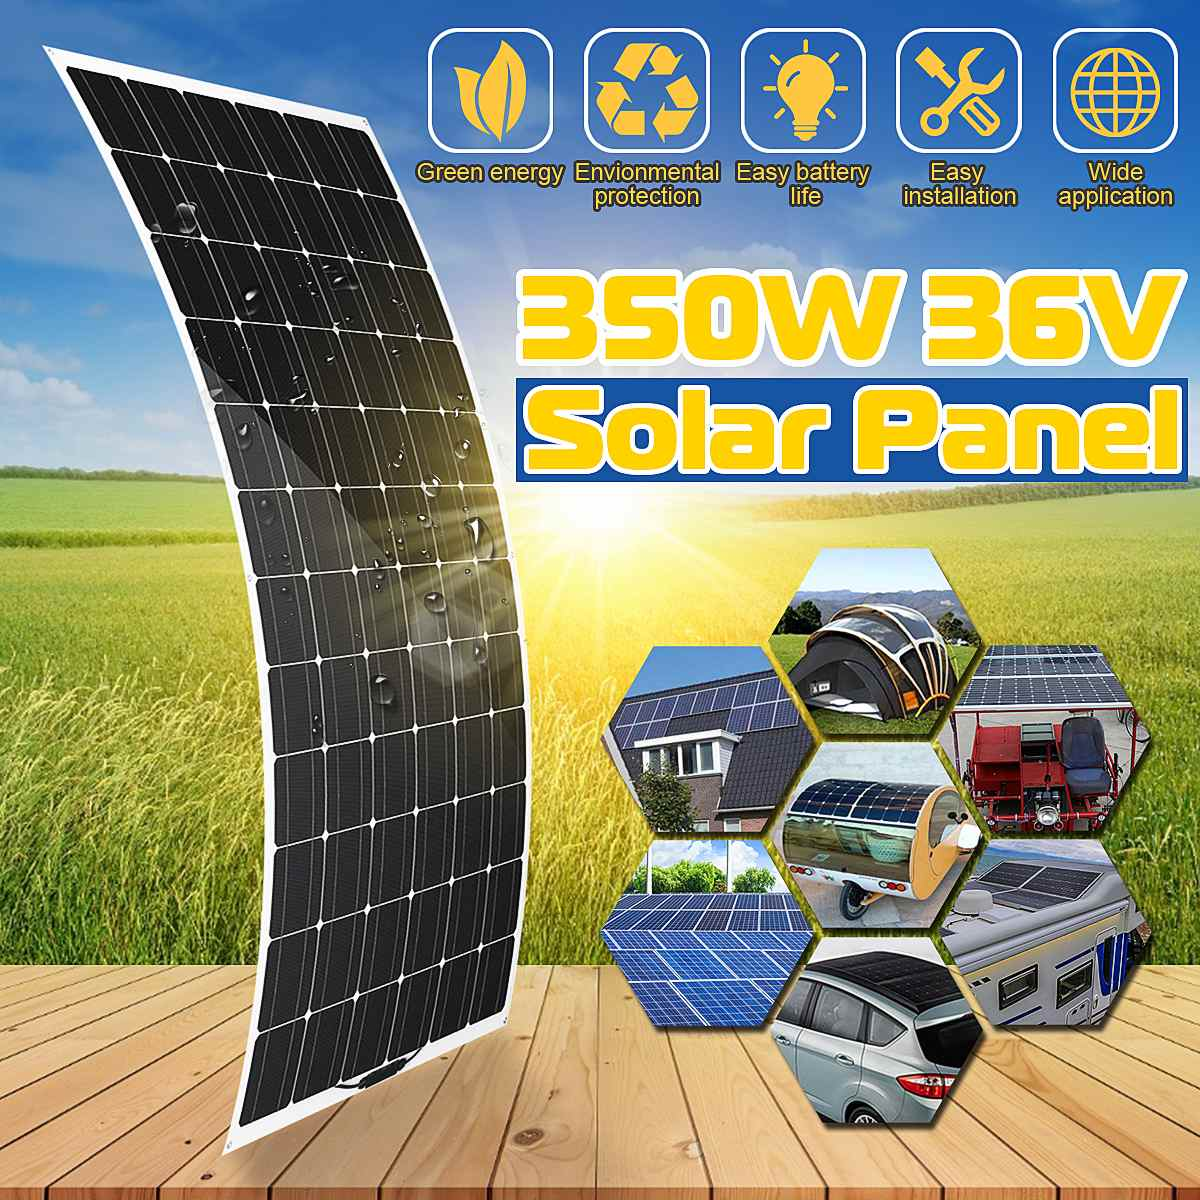 Semi flexible Solar Panel 350W 36V solar system Photovoltaic 36V Solar Cell Waterproof battery/yacht/RV/car/boat with Connector  - buy with discount